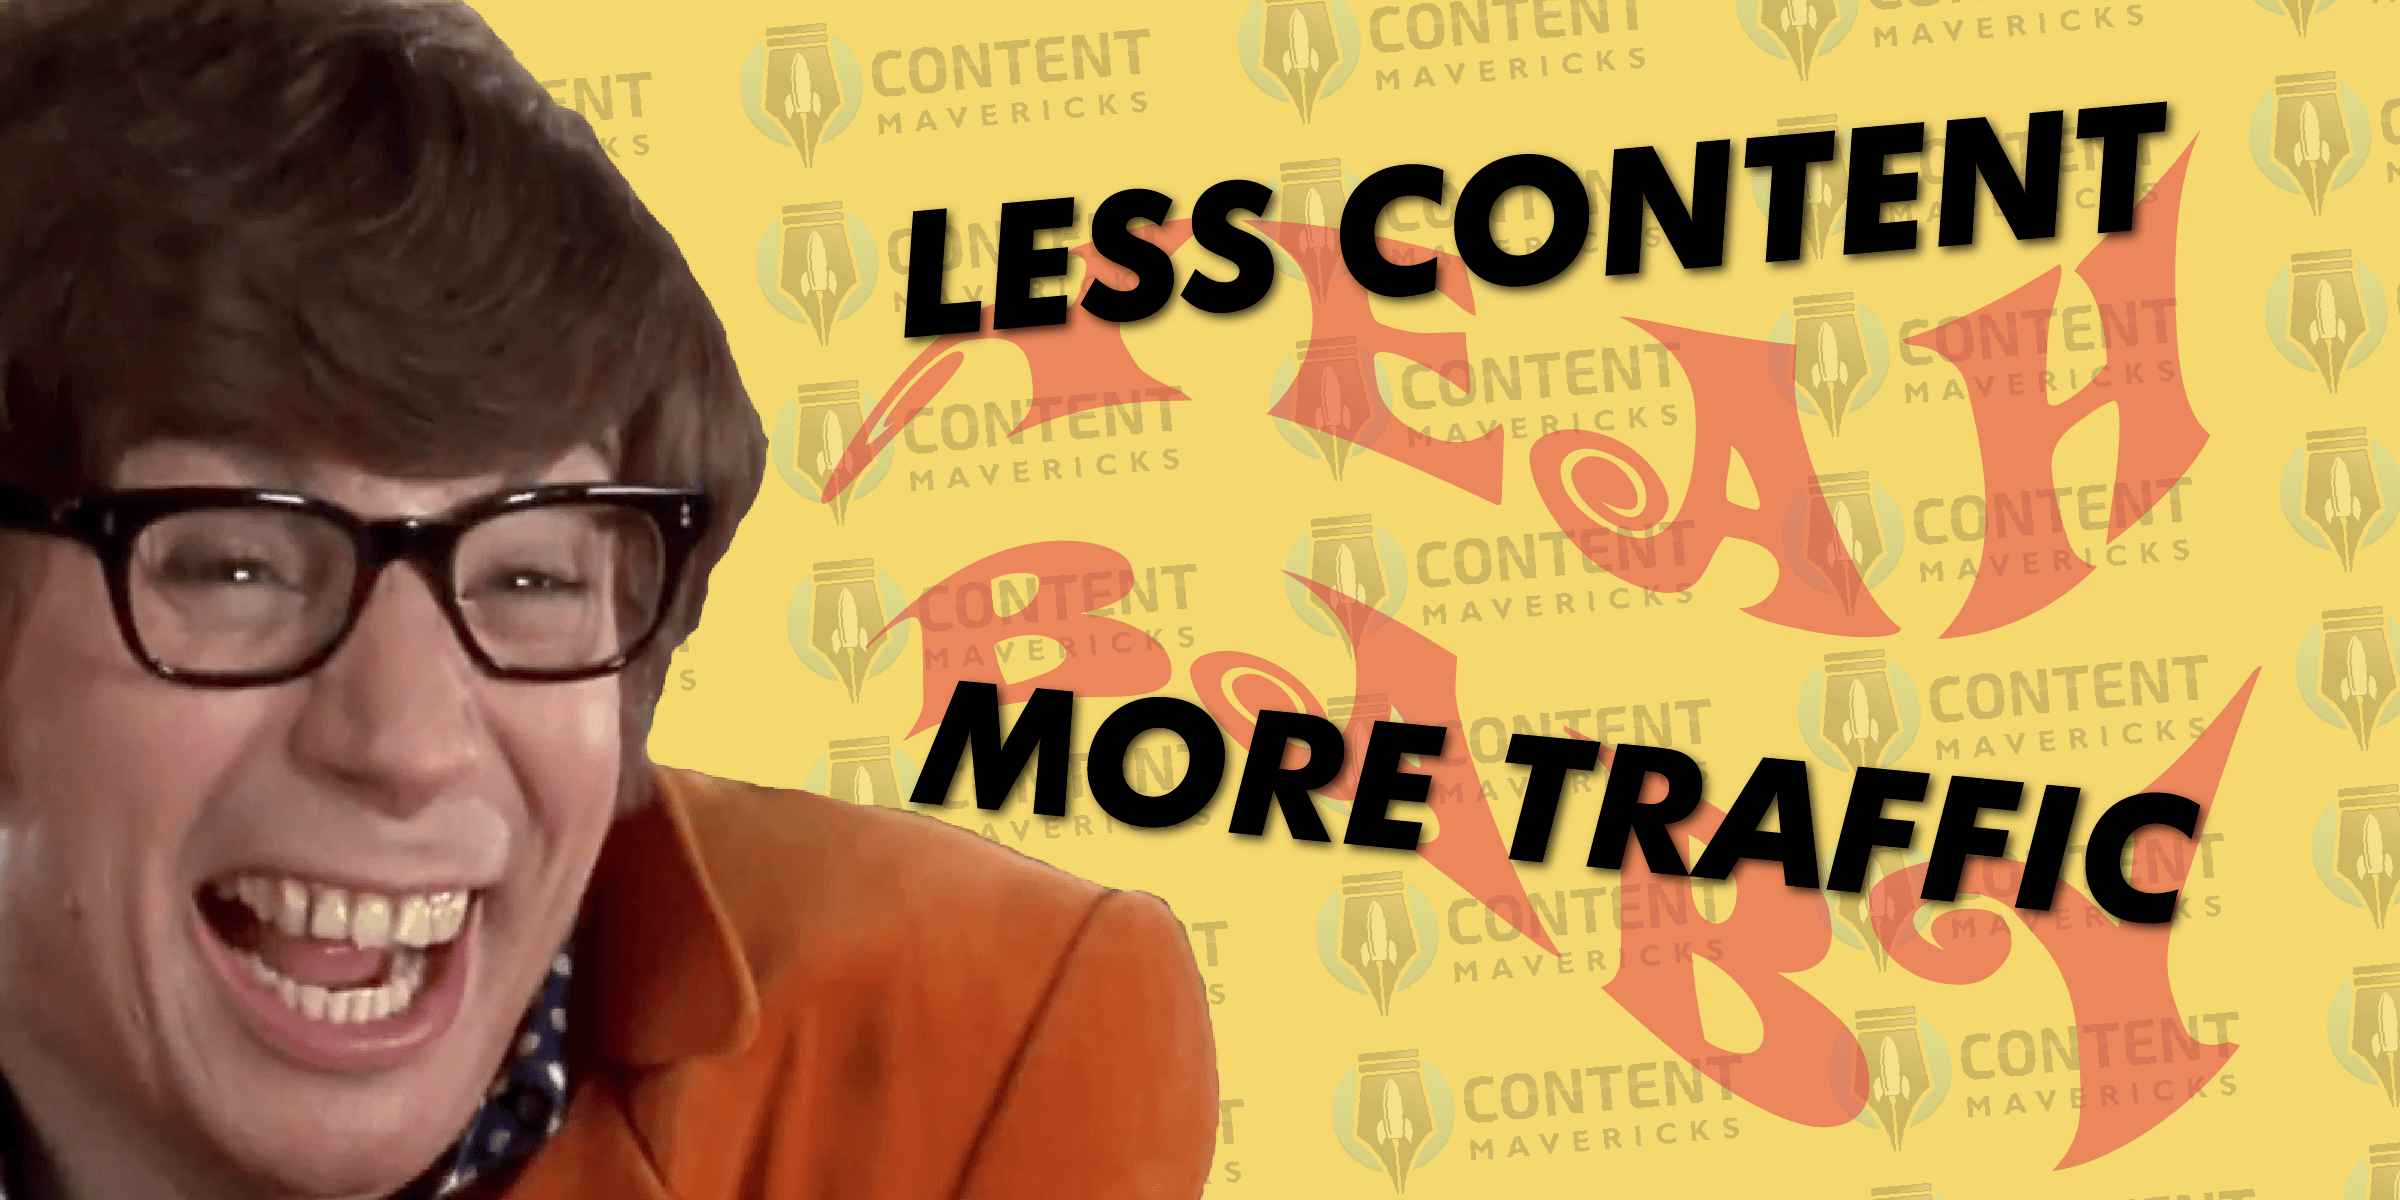 more traffic less content